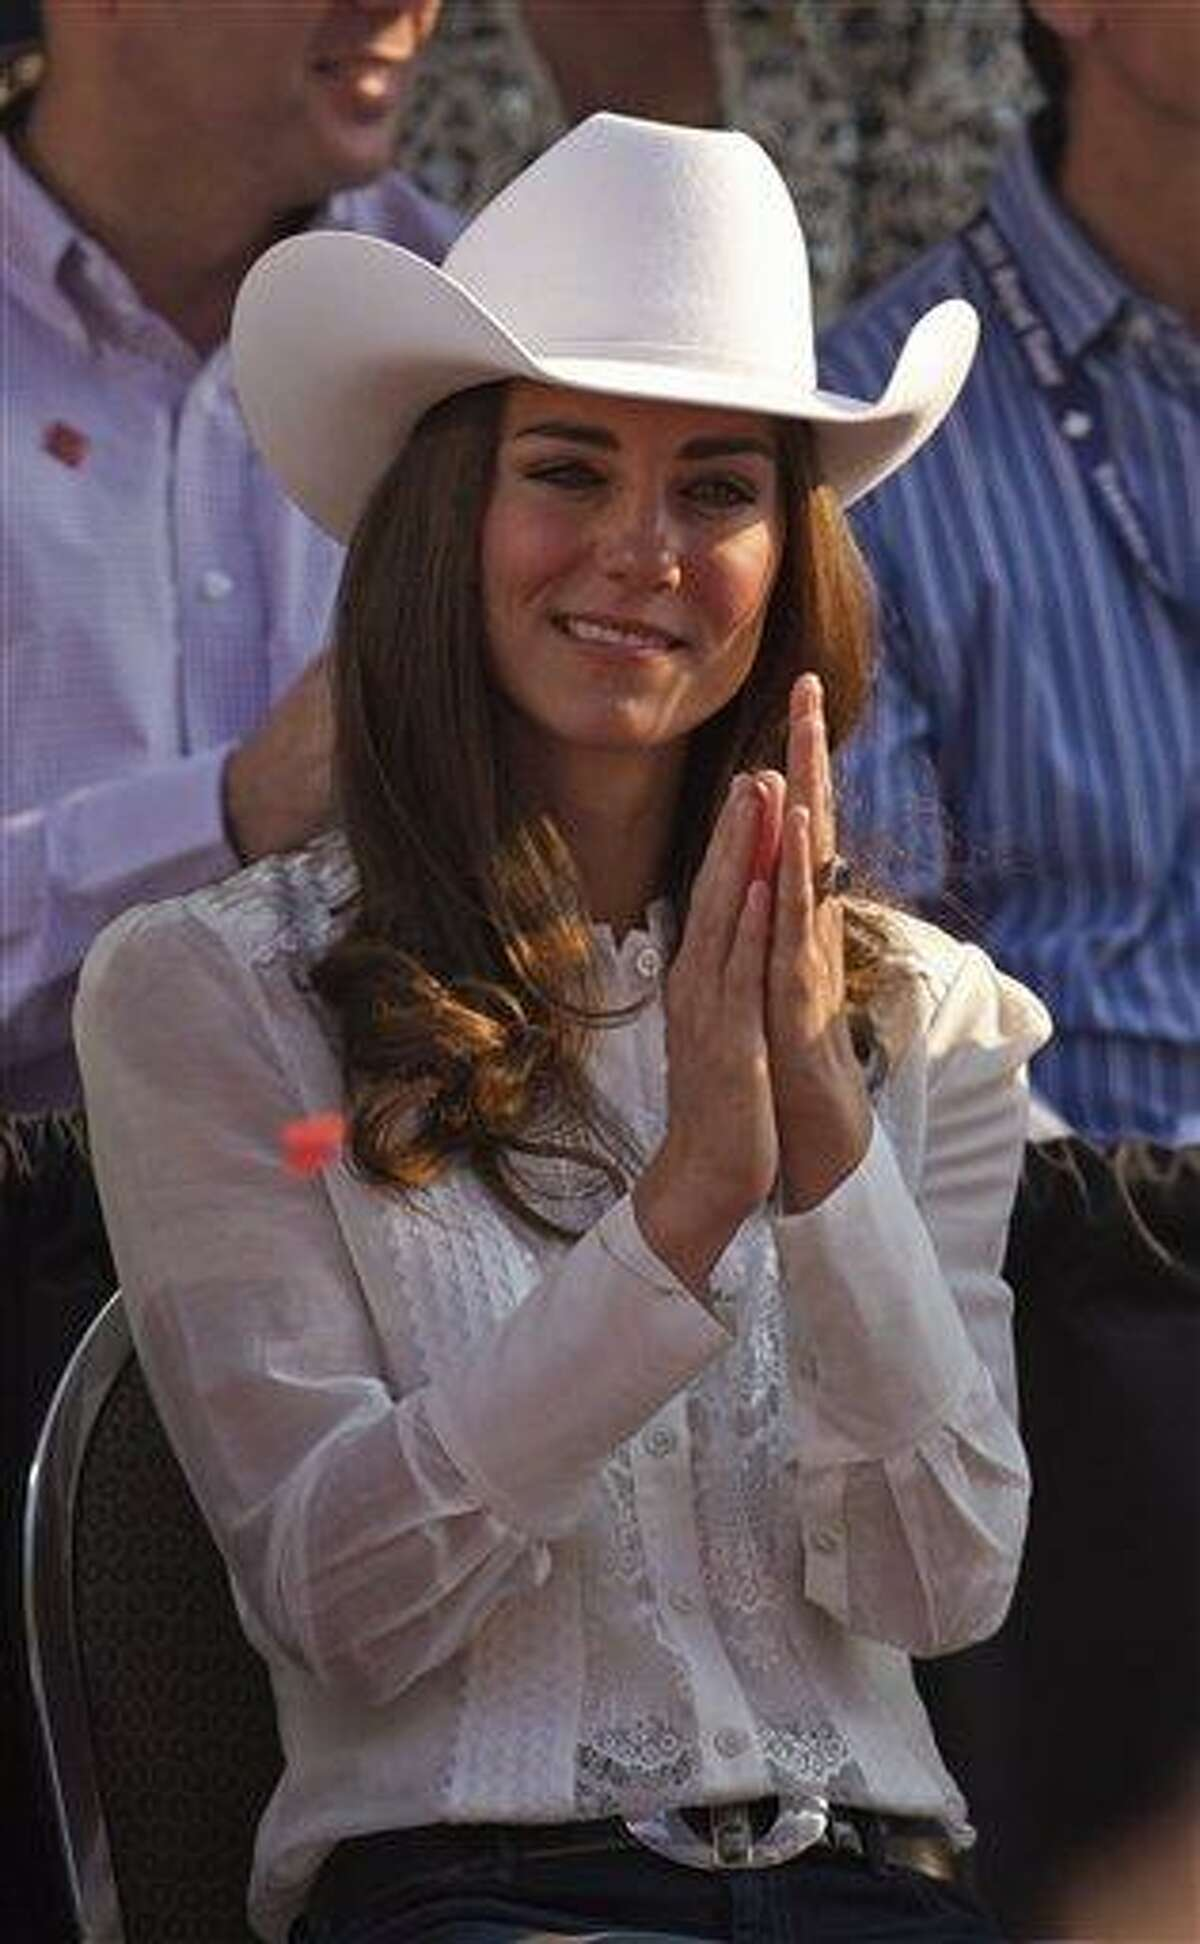 In this July 8, 2011 file photo, Kate, the Duchess of Cambridge, watches the Calgary Stampede parade in Calgary, Canada as the Royal couple continue their Royal Tour of Canada. The Duchess of Cambridge is turning 30 on Monday - but royal fans expecting a lavish birthday bash to mark the milestone will be disappointed. Associated Press